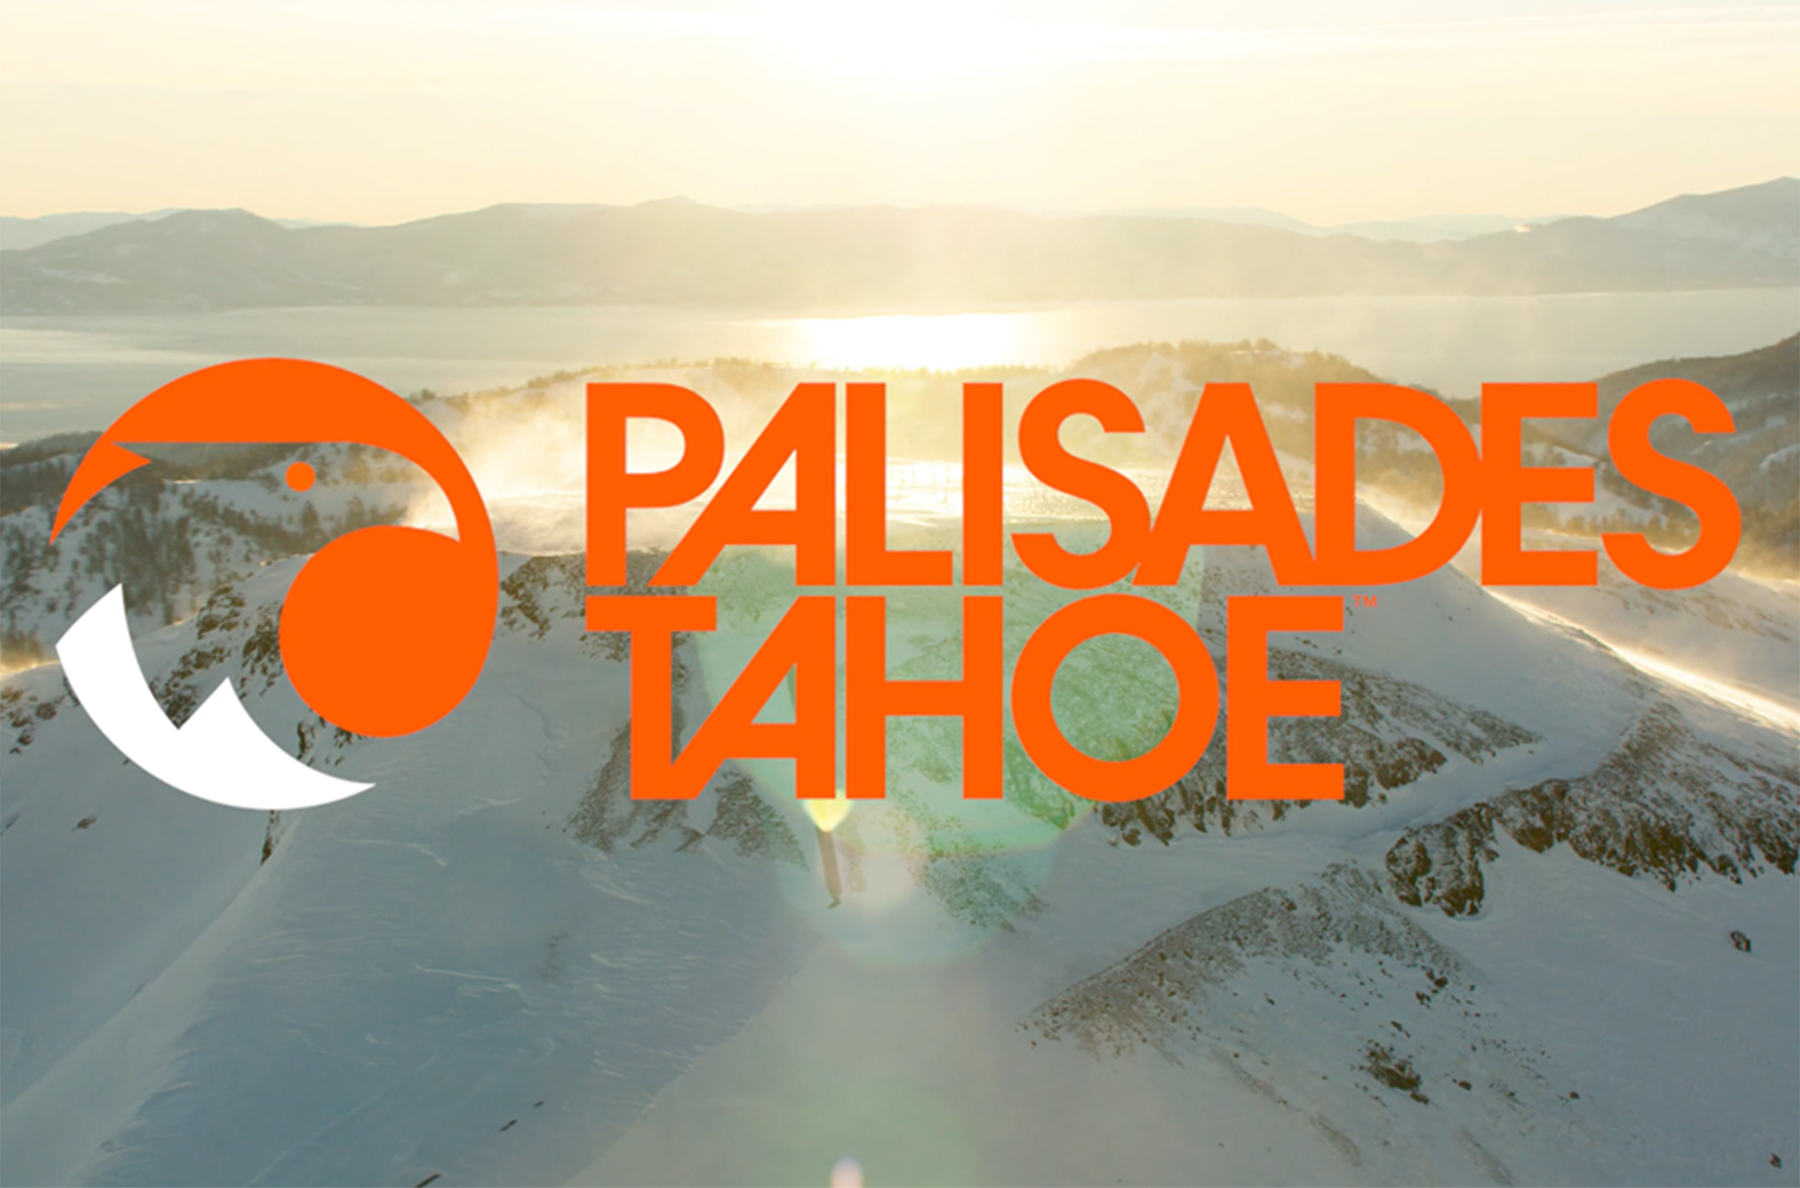 """On our latest Blister Podcast, Cody Townsend and Jonathan Ellsworth discuss the NFL(?); the massive increase in Epic Pass sales; the name change to """"Palisades Tahoe""""; whether you should shower; some of our all-time favorite TV characters; and more."""